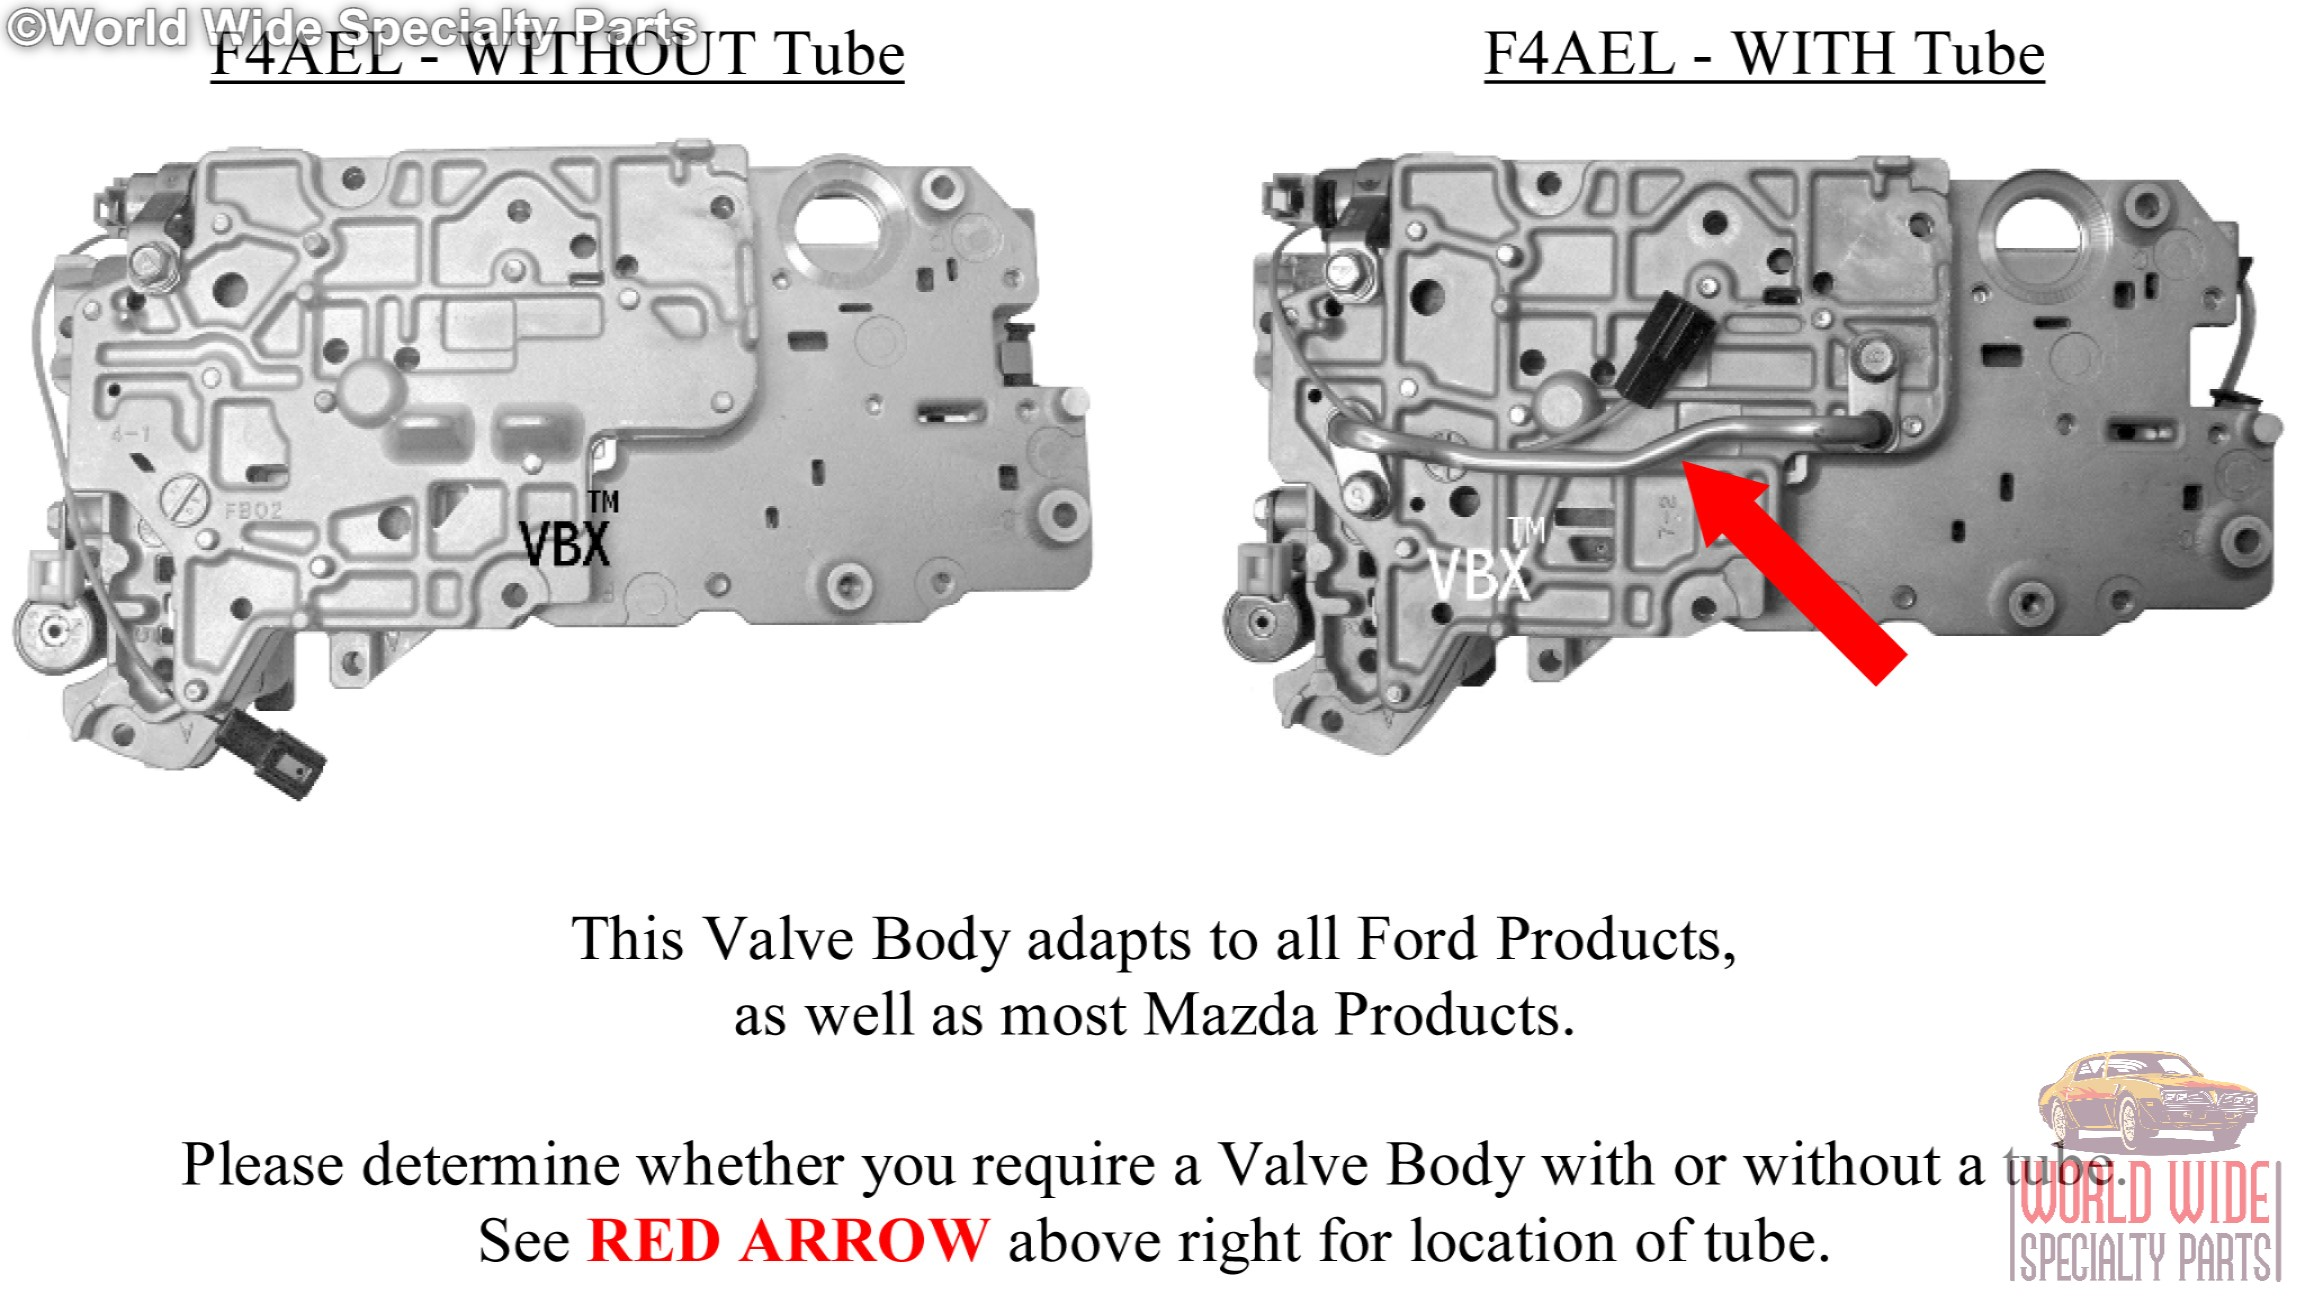 Ford Mazda F4ael F4eat Valve Body 1997 2005 Without Tube